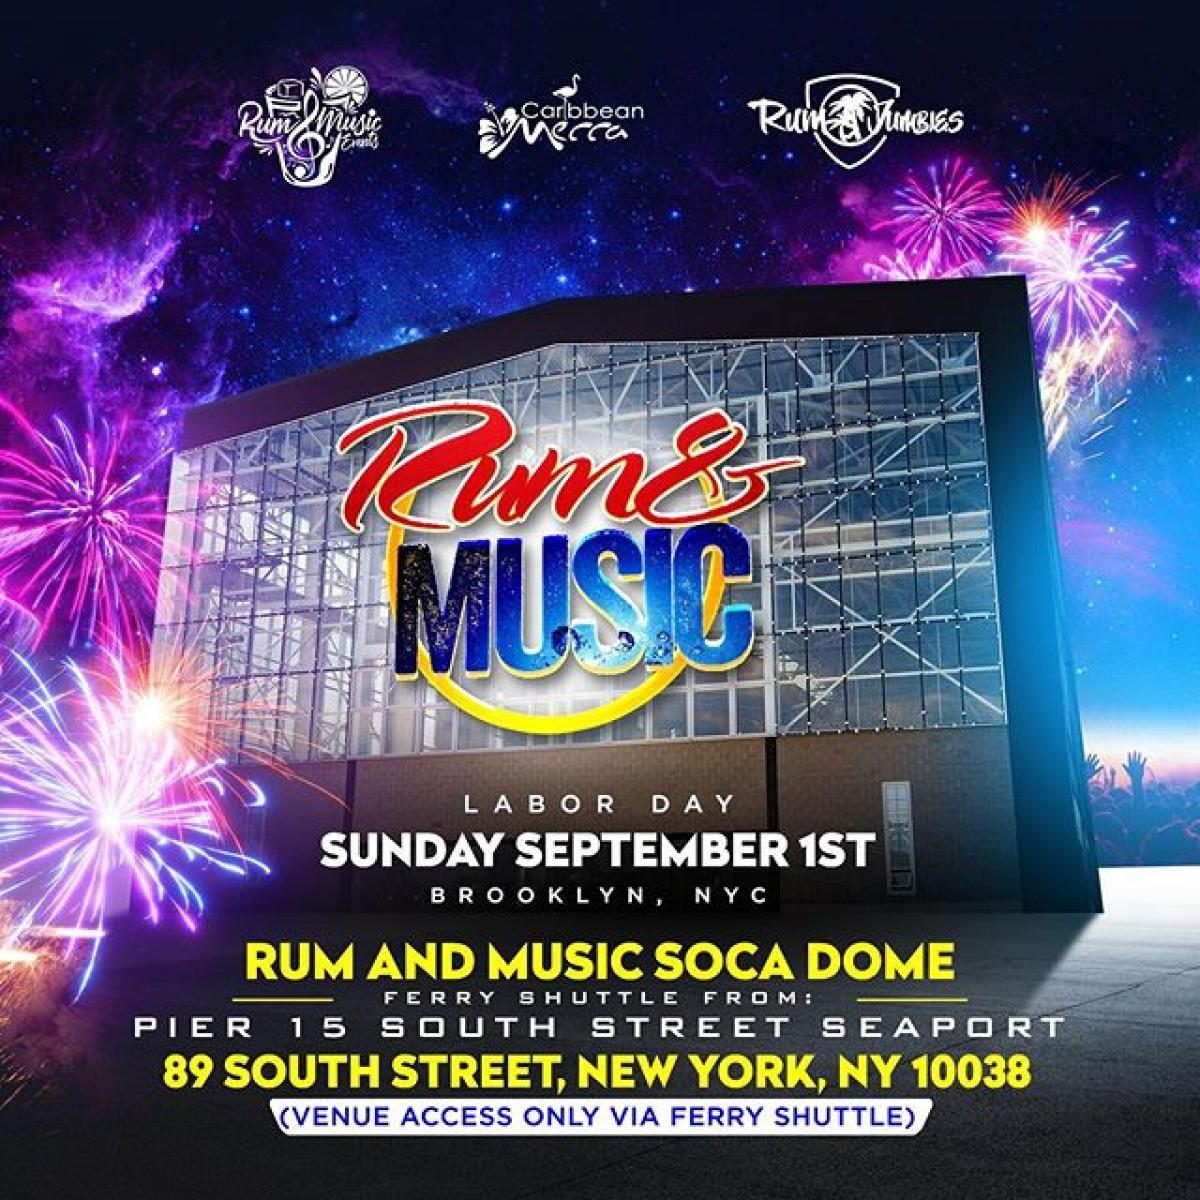 Rum & Music flyer or graphic.